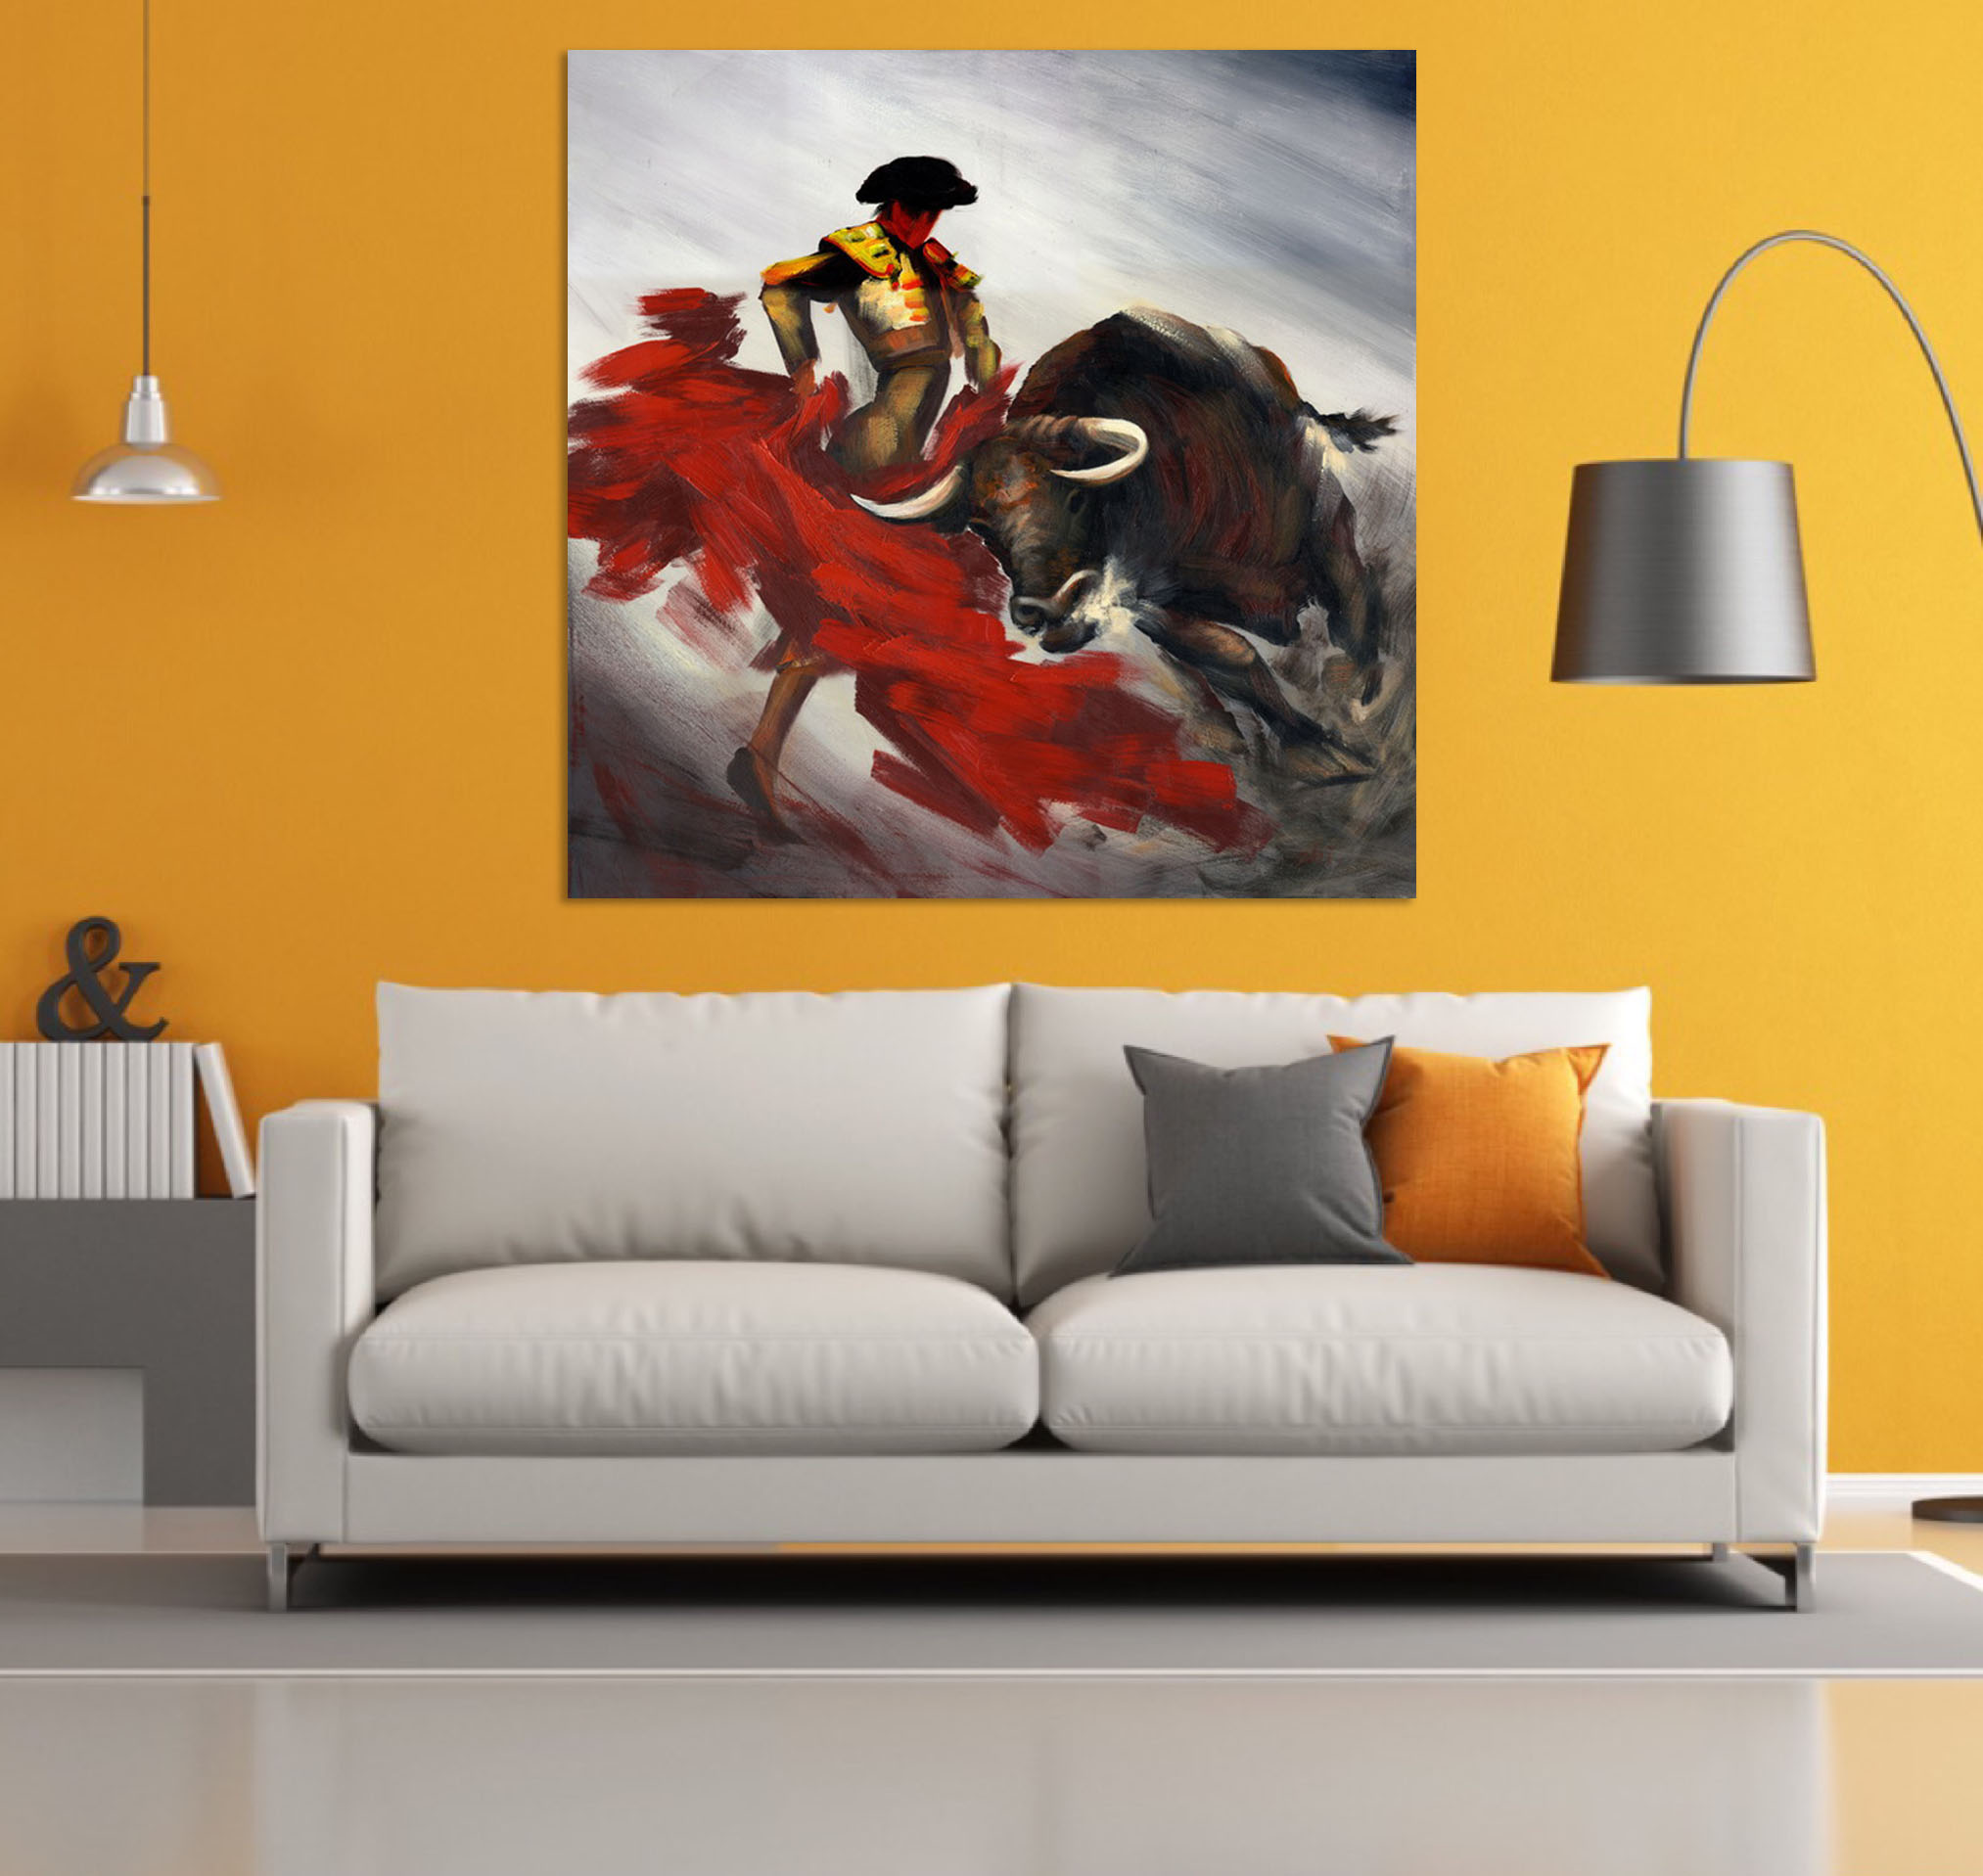 Bullfighting Animal Handpainted Oil Painting Home Wall Art Decor Large Modern Wall Painting On Canvas For Living Room